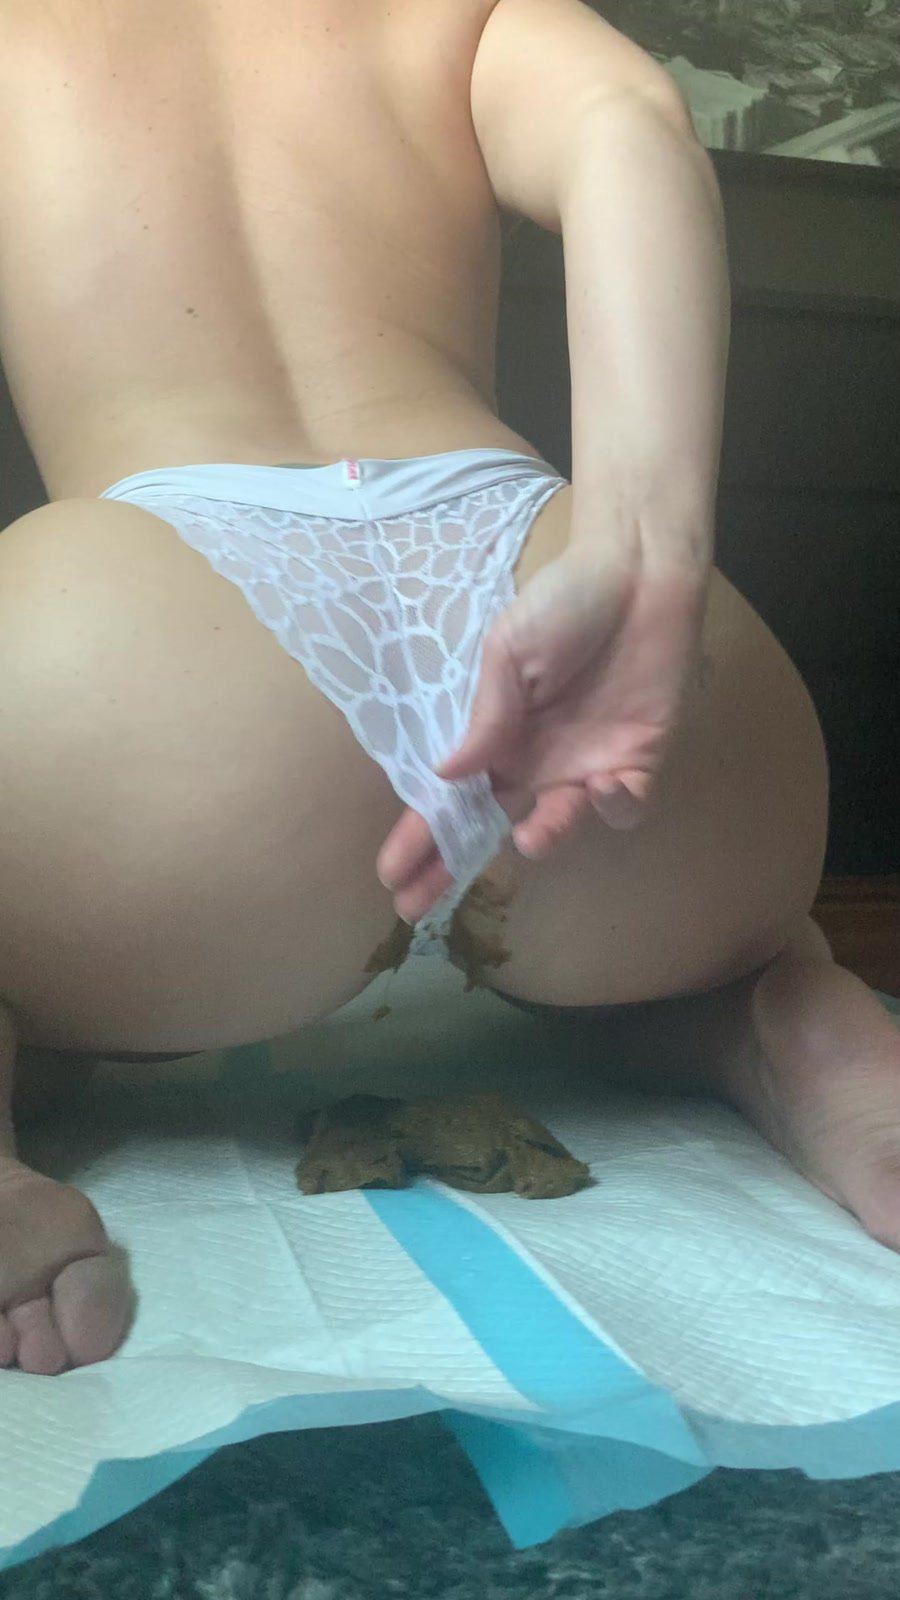 Shitty Panties: (Natalielynne699) - This panty poop turned real messy [UltraHD 2K] - Scatology, Solo